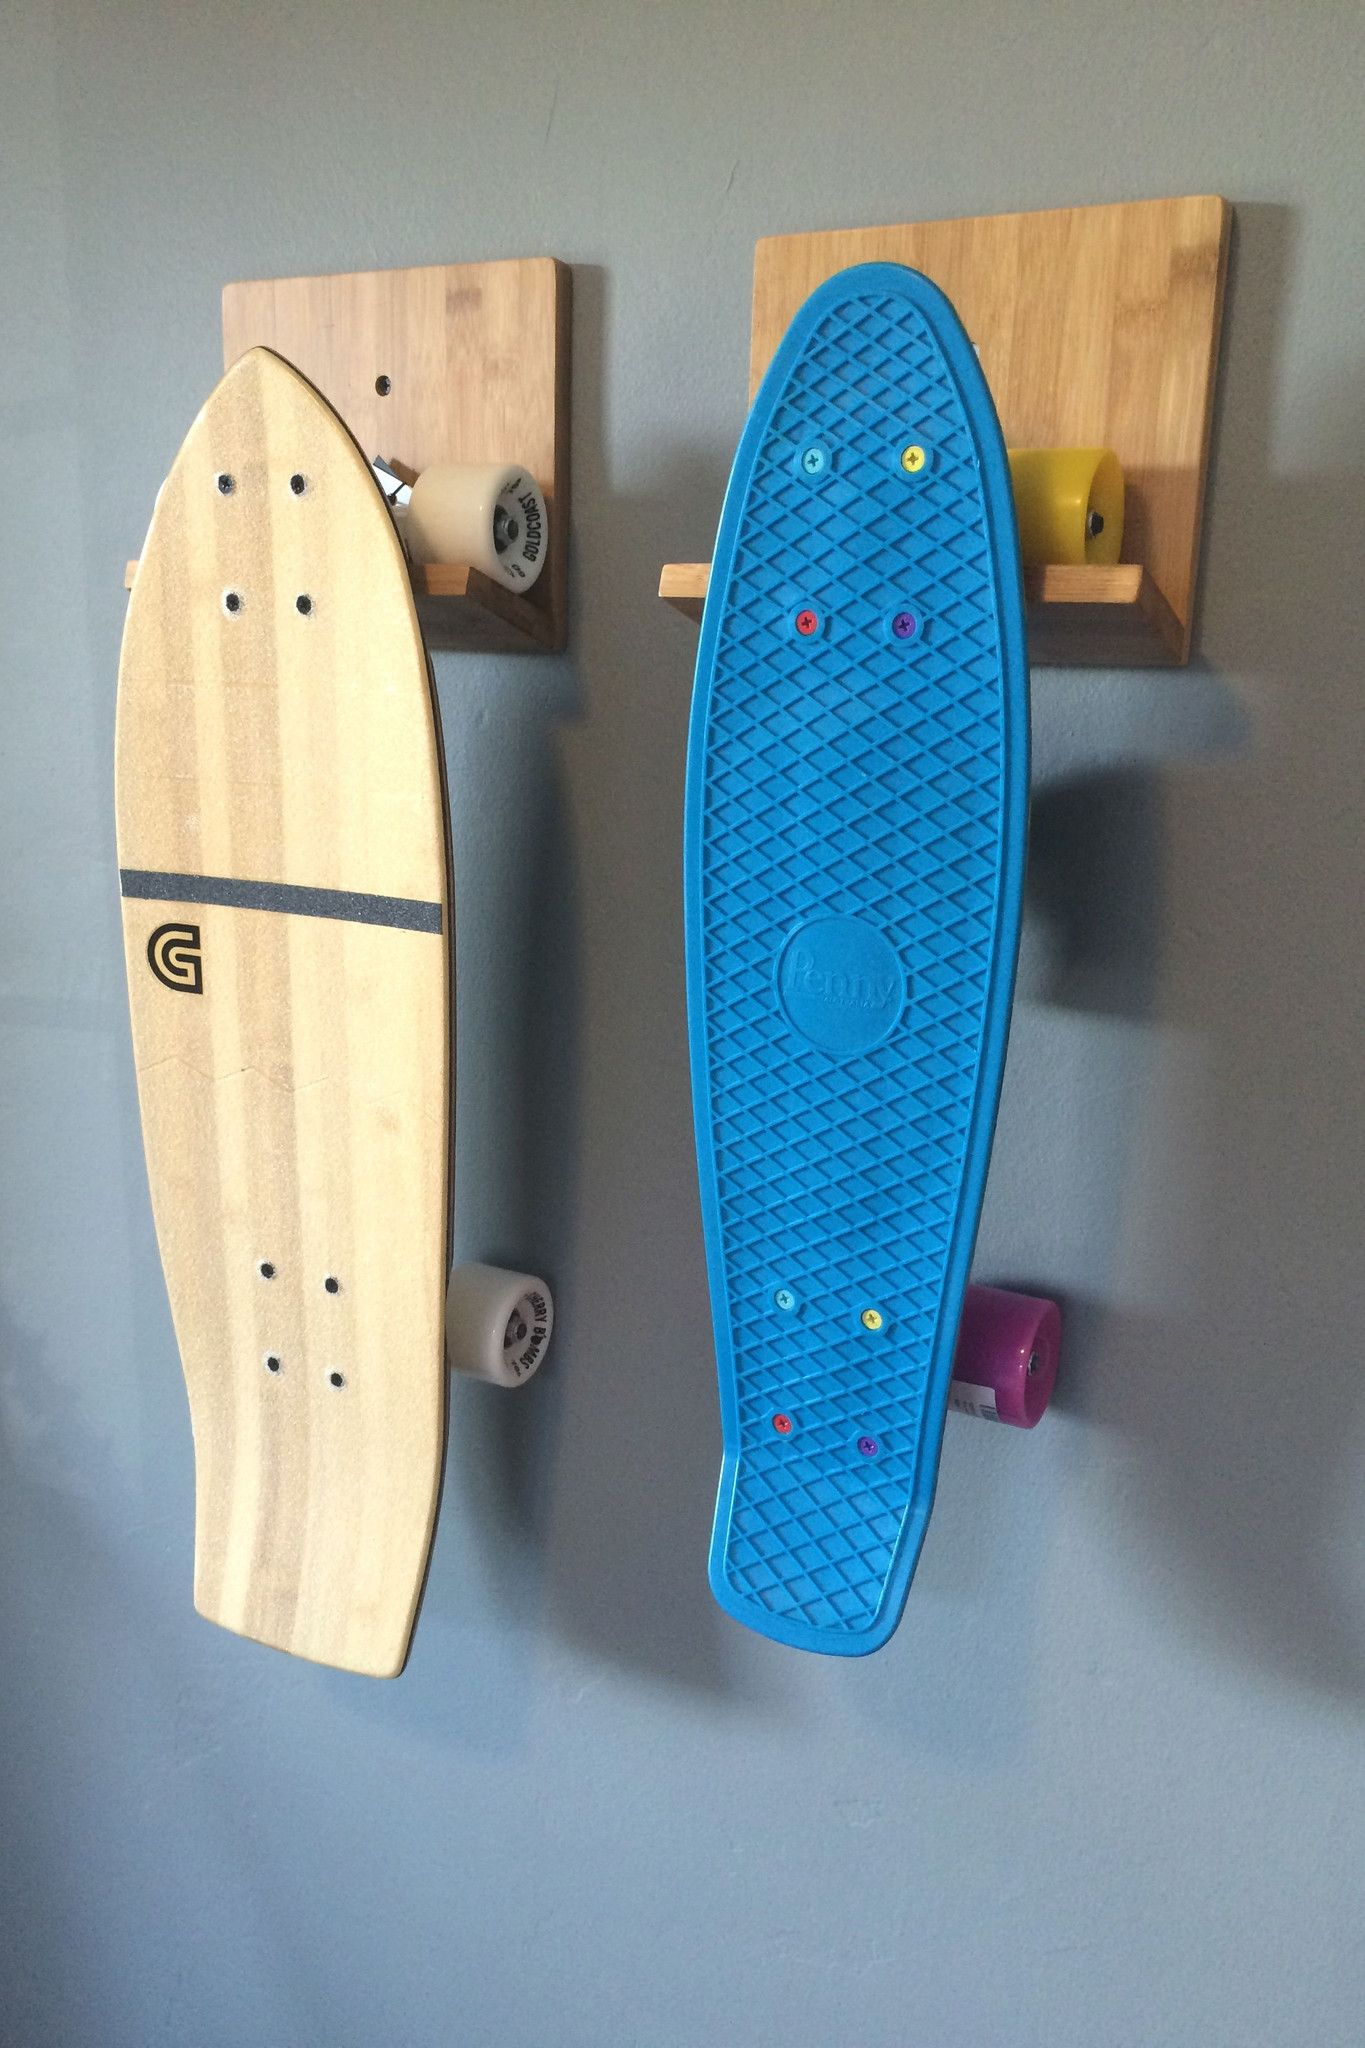 Charmant Kinderzimmer · Regal · Schlafzimmer · The COR #skateboard Rack Work With  All Types Of Boards. Longboards, Penny Boards